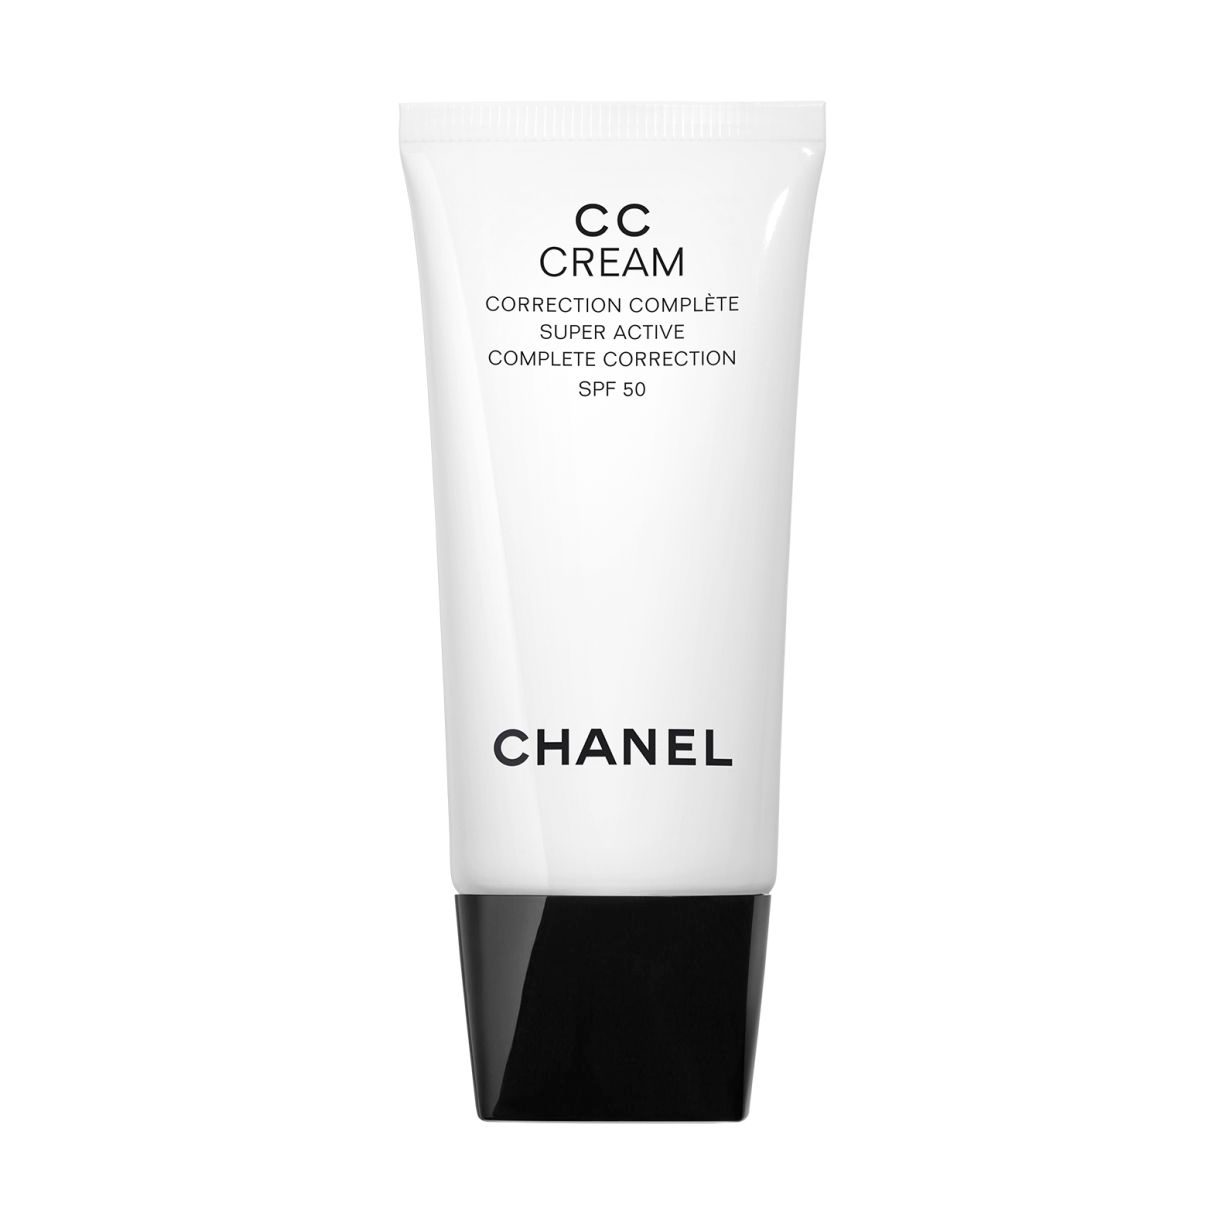 CC CREAM SUPER ACTIVE COMPLETE CORRECTION SPF 50